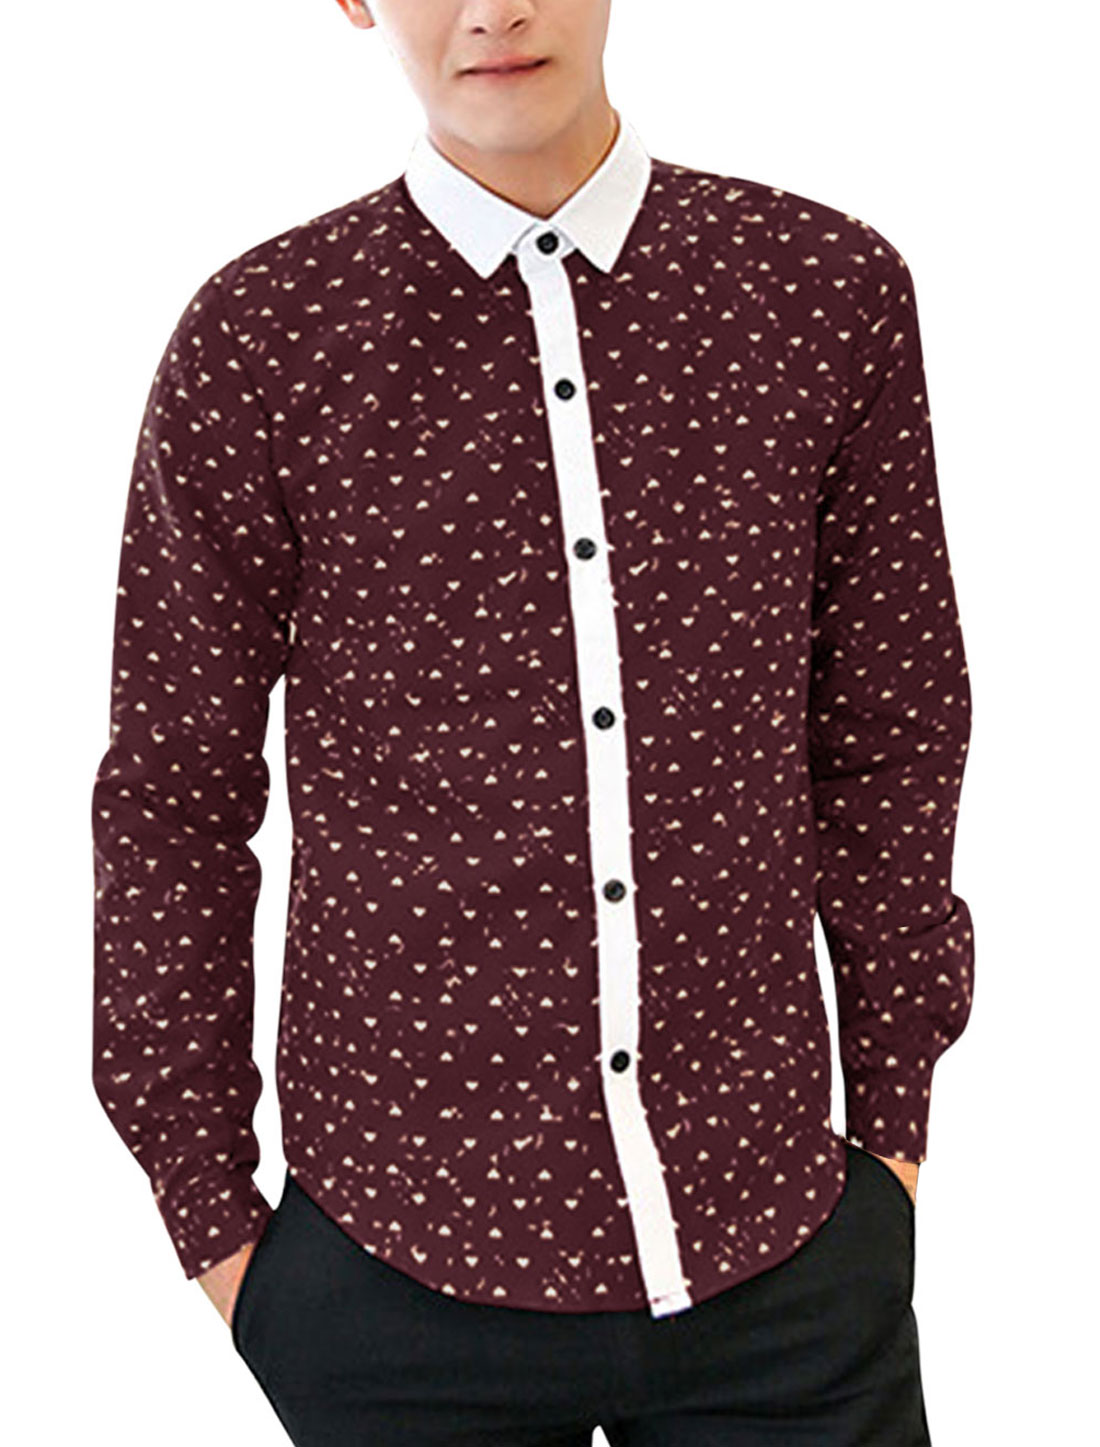 Men All-over Heart Print Contrast Placket Fashion Shirt Burgundy M